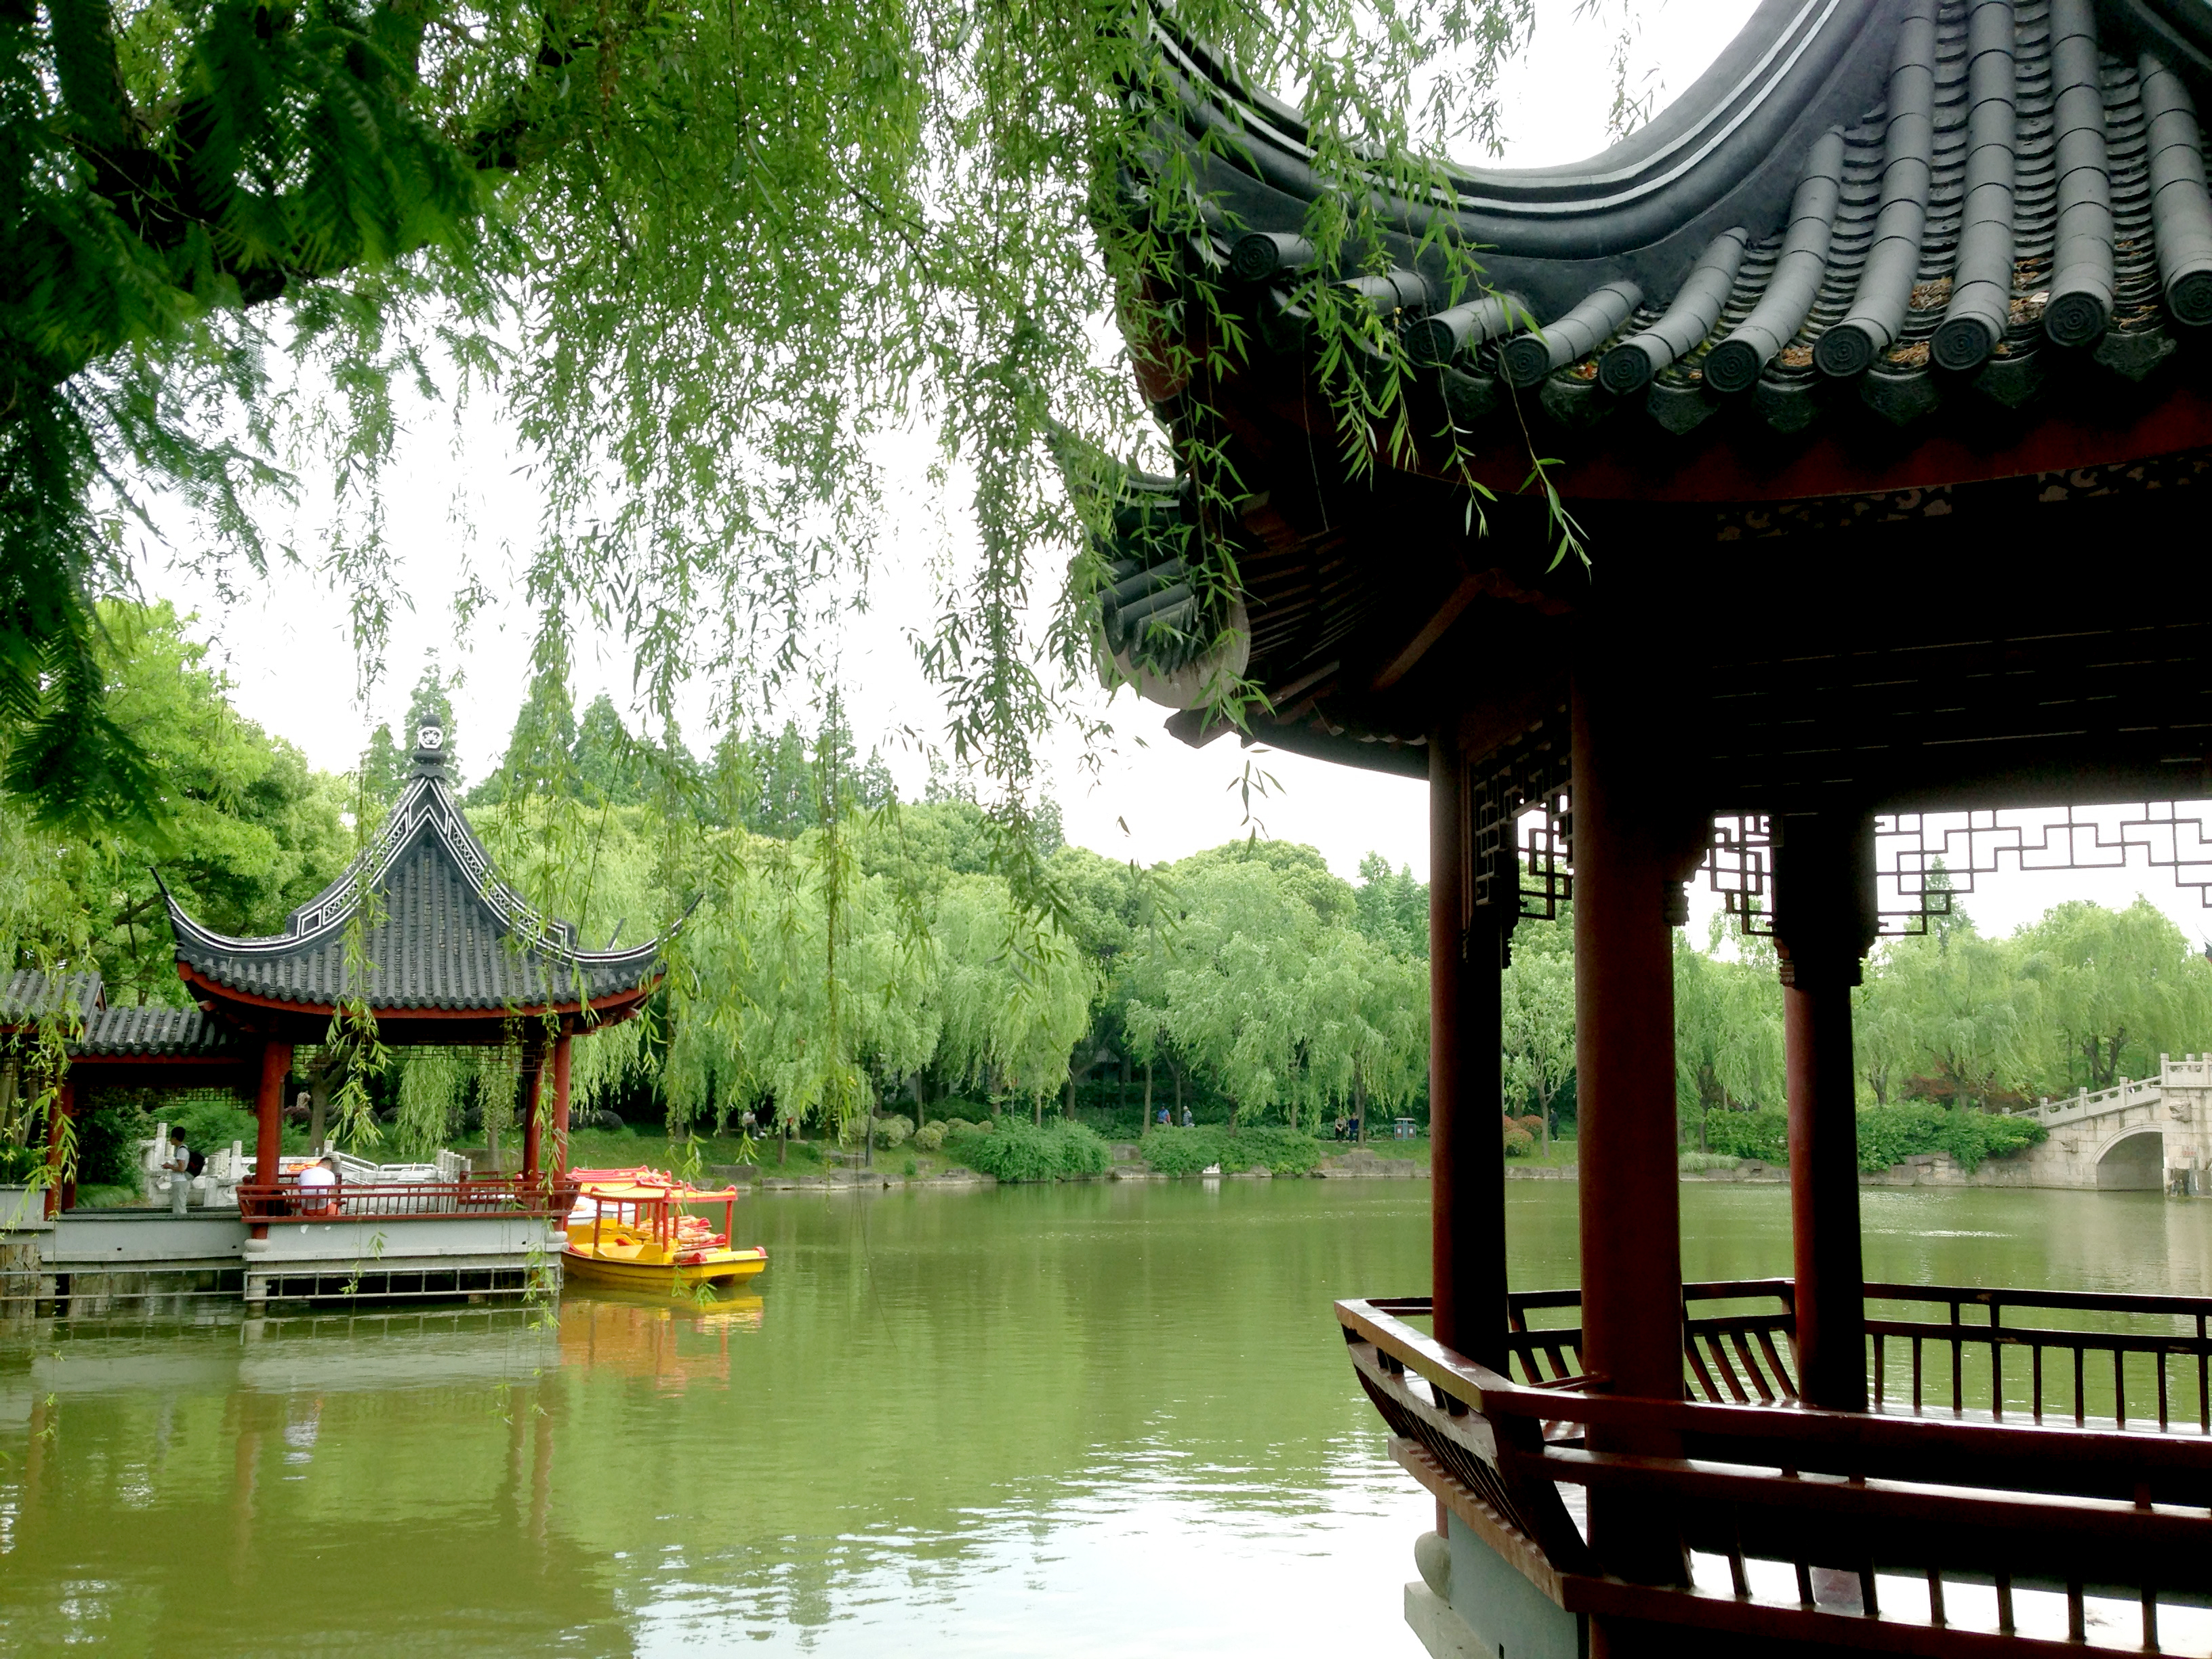 An oasis of tranquility